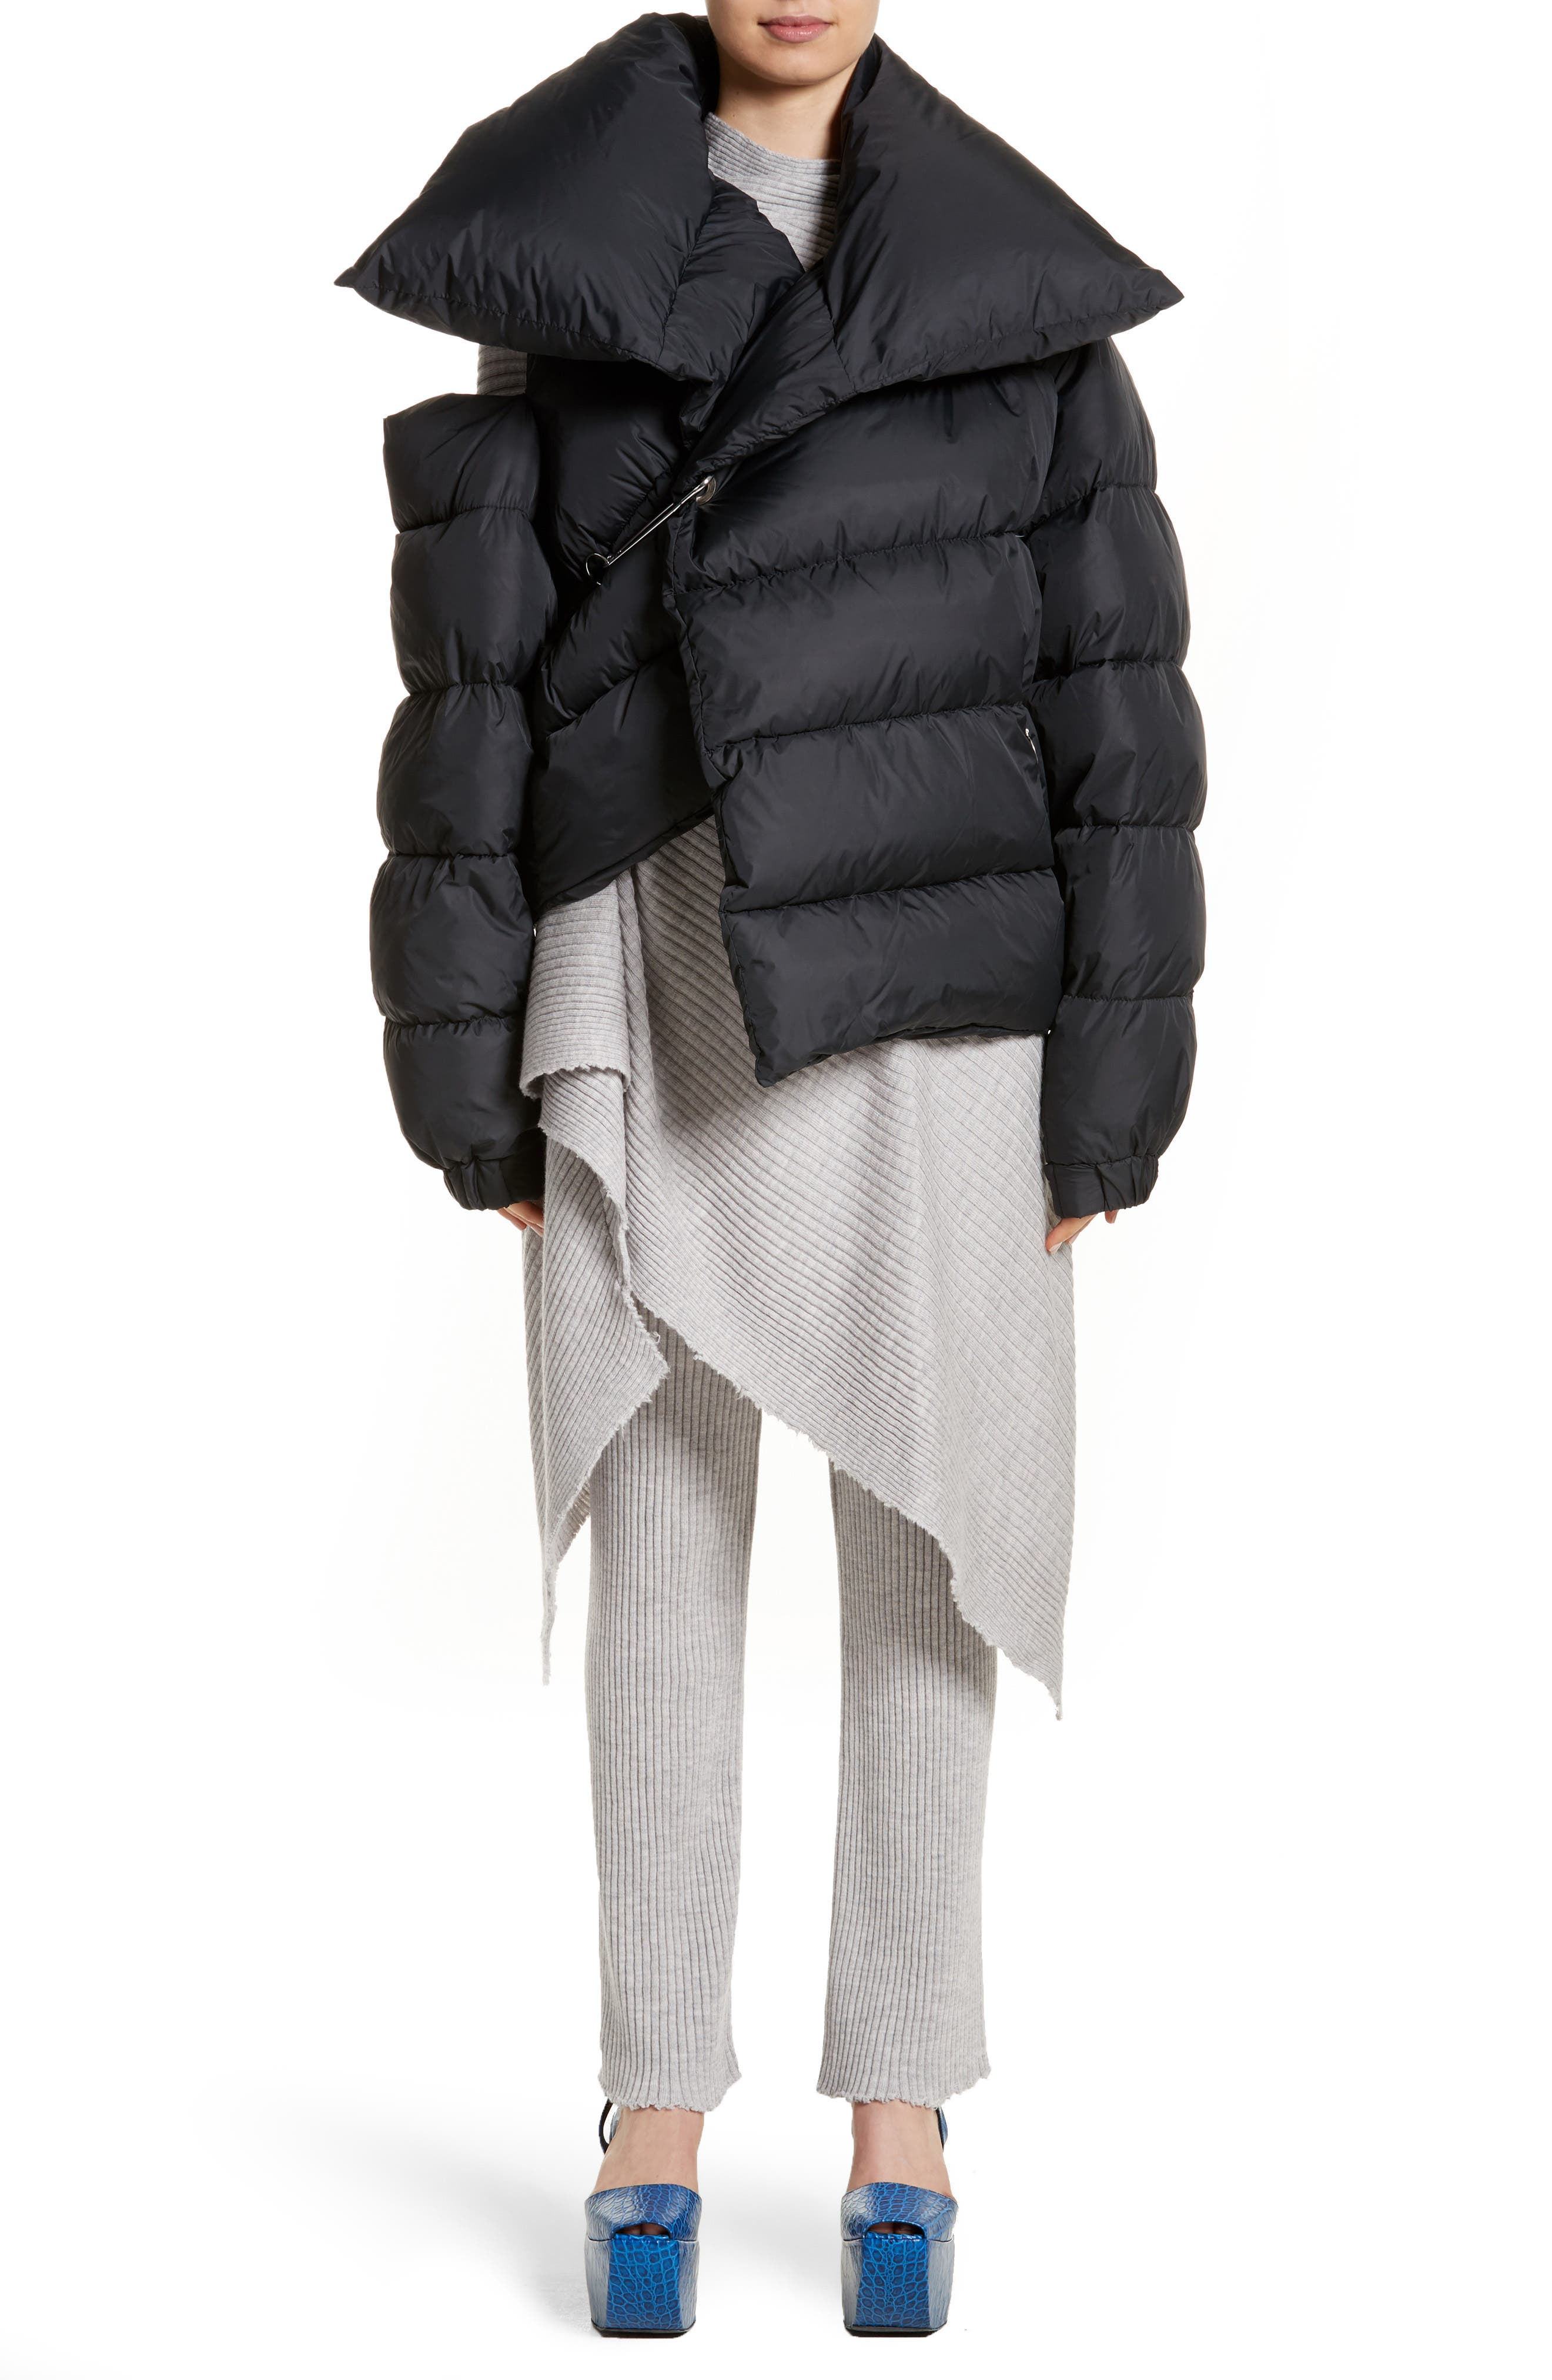 Marques'Almeida Asymmetrical Down Puffer Coat with Safety Pin Closure,                             Main thumbnail 1, color,                             001